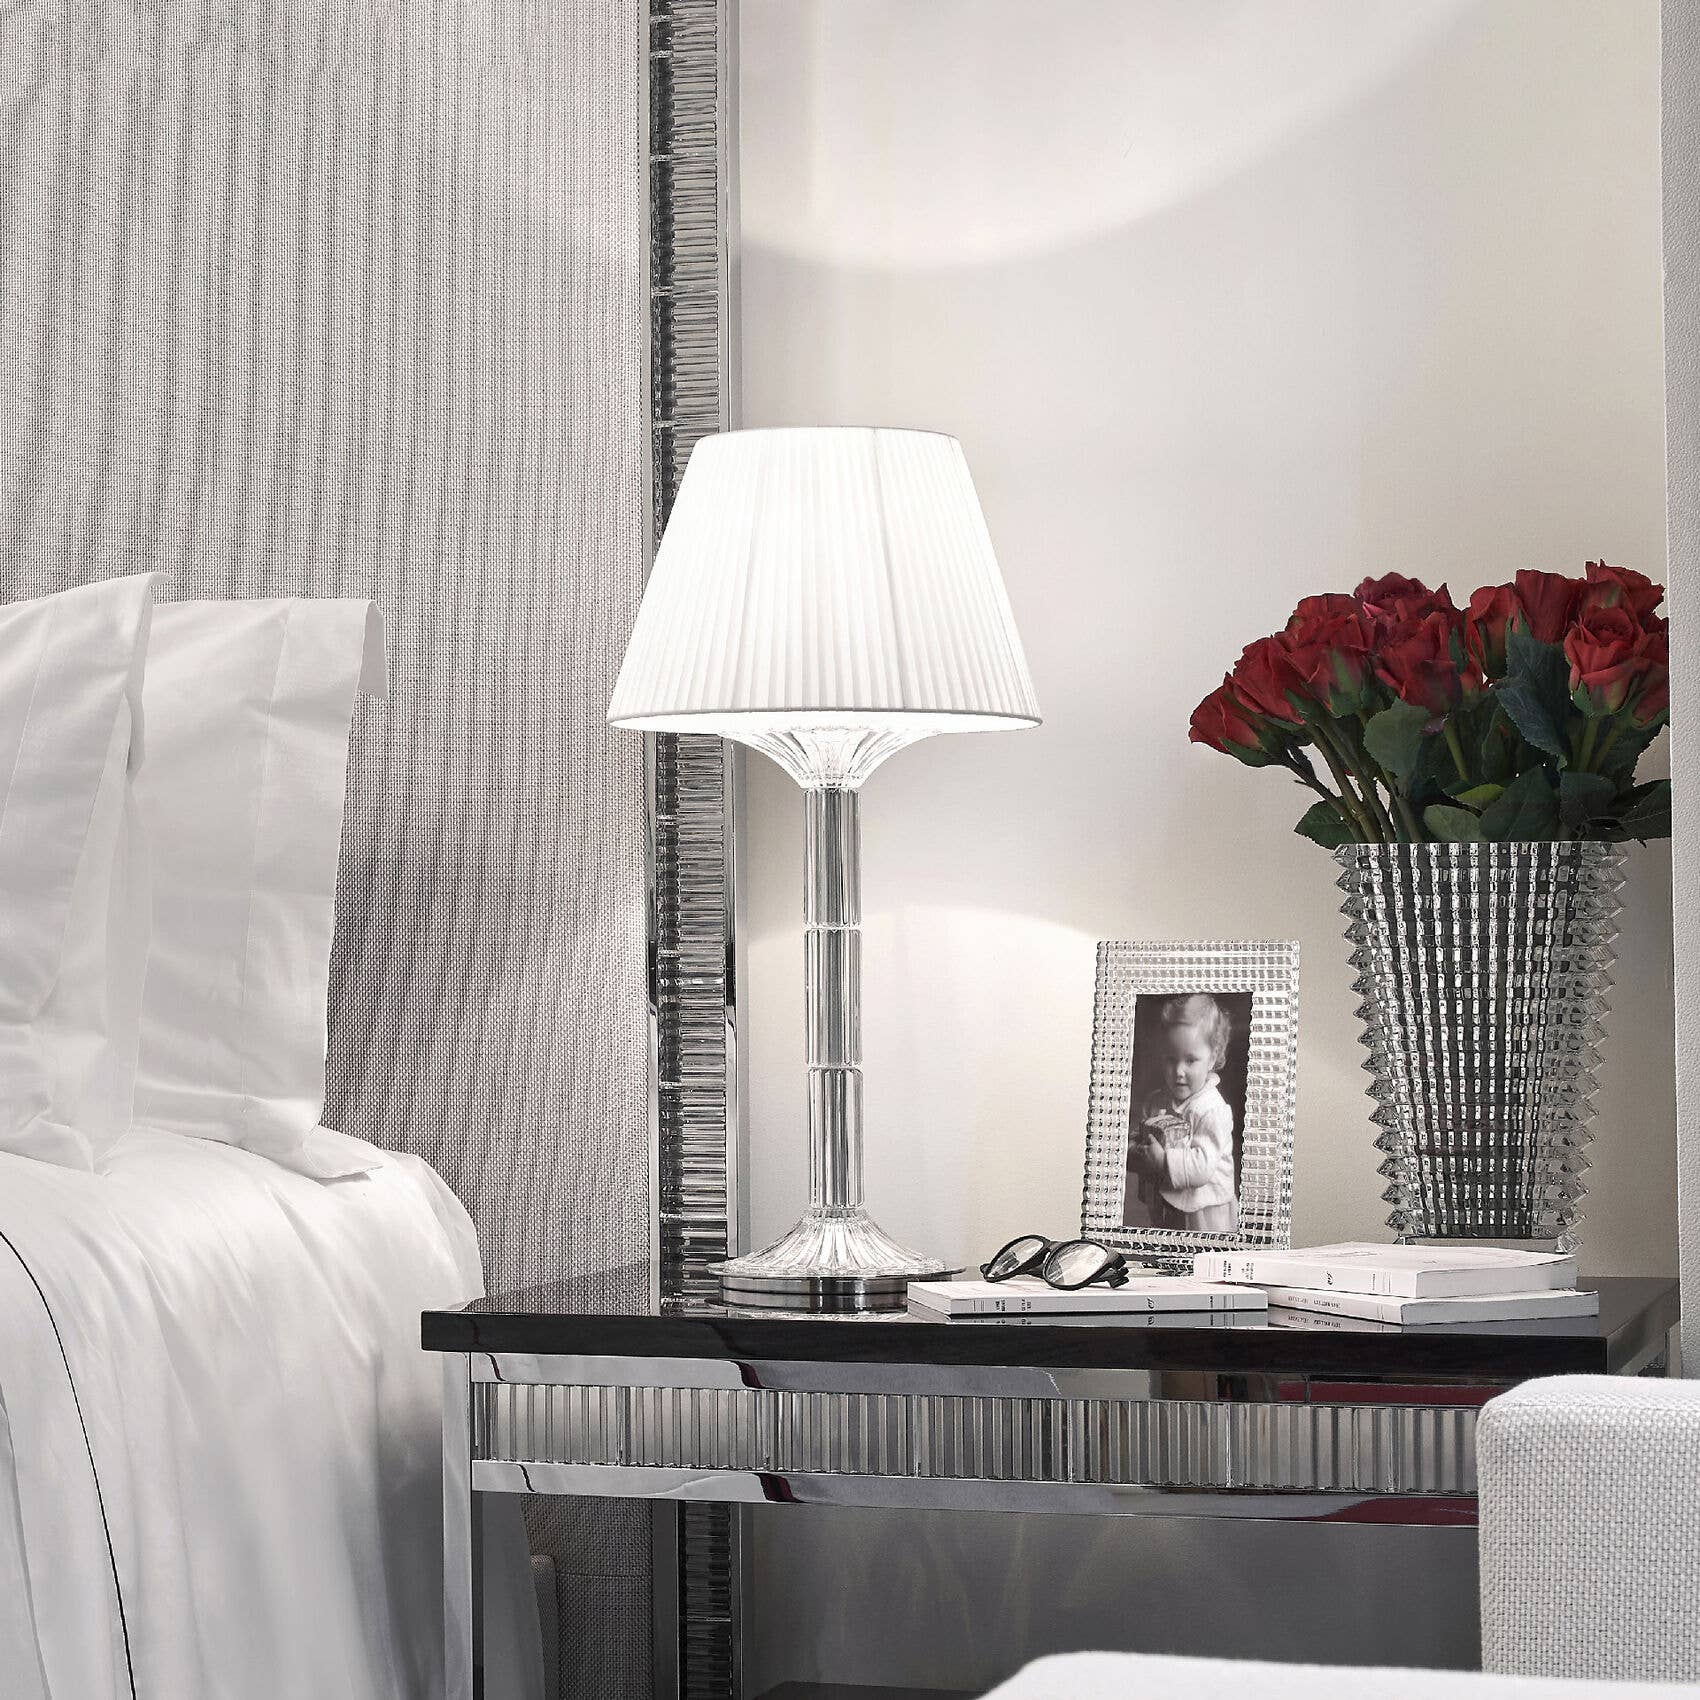 Mille Nuit lamp on night stand with signature Eye vase and frame